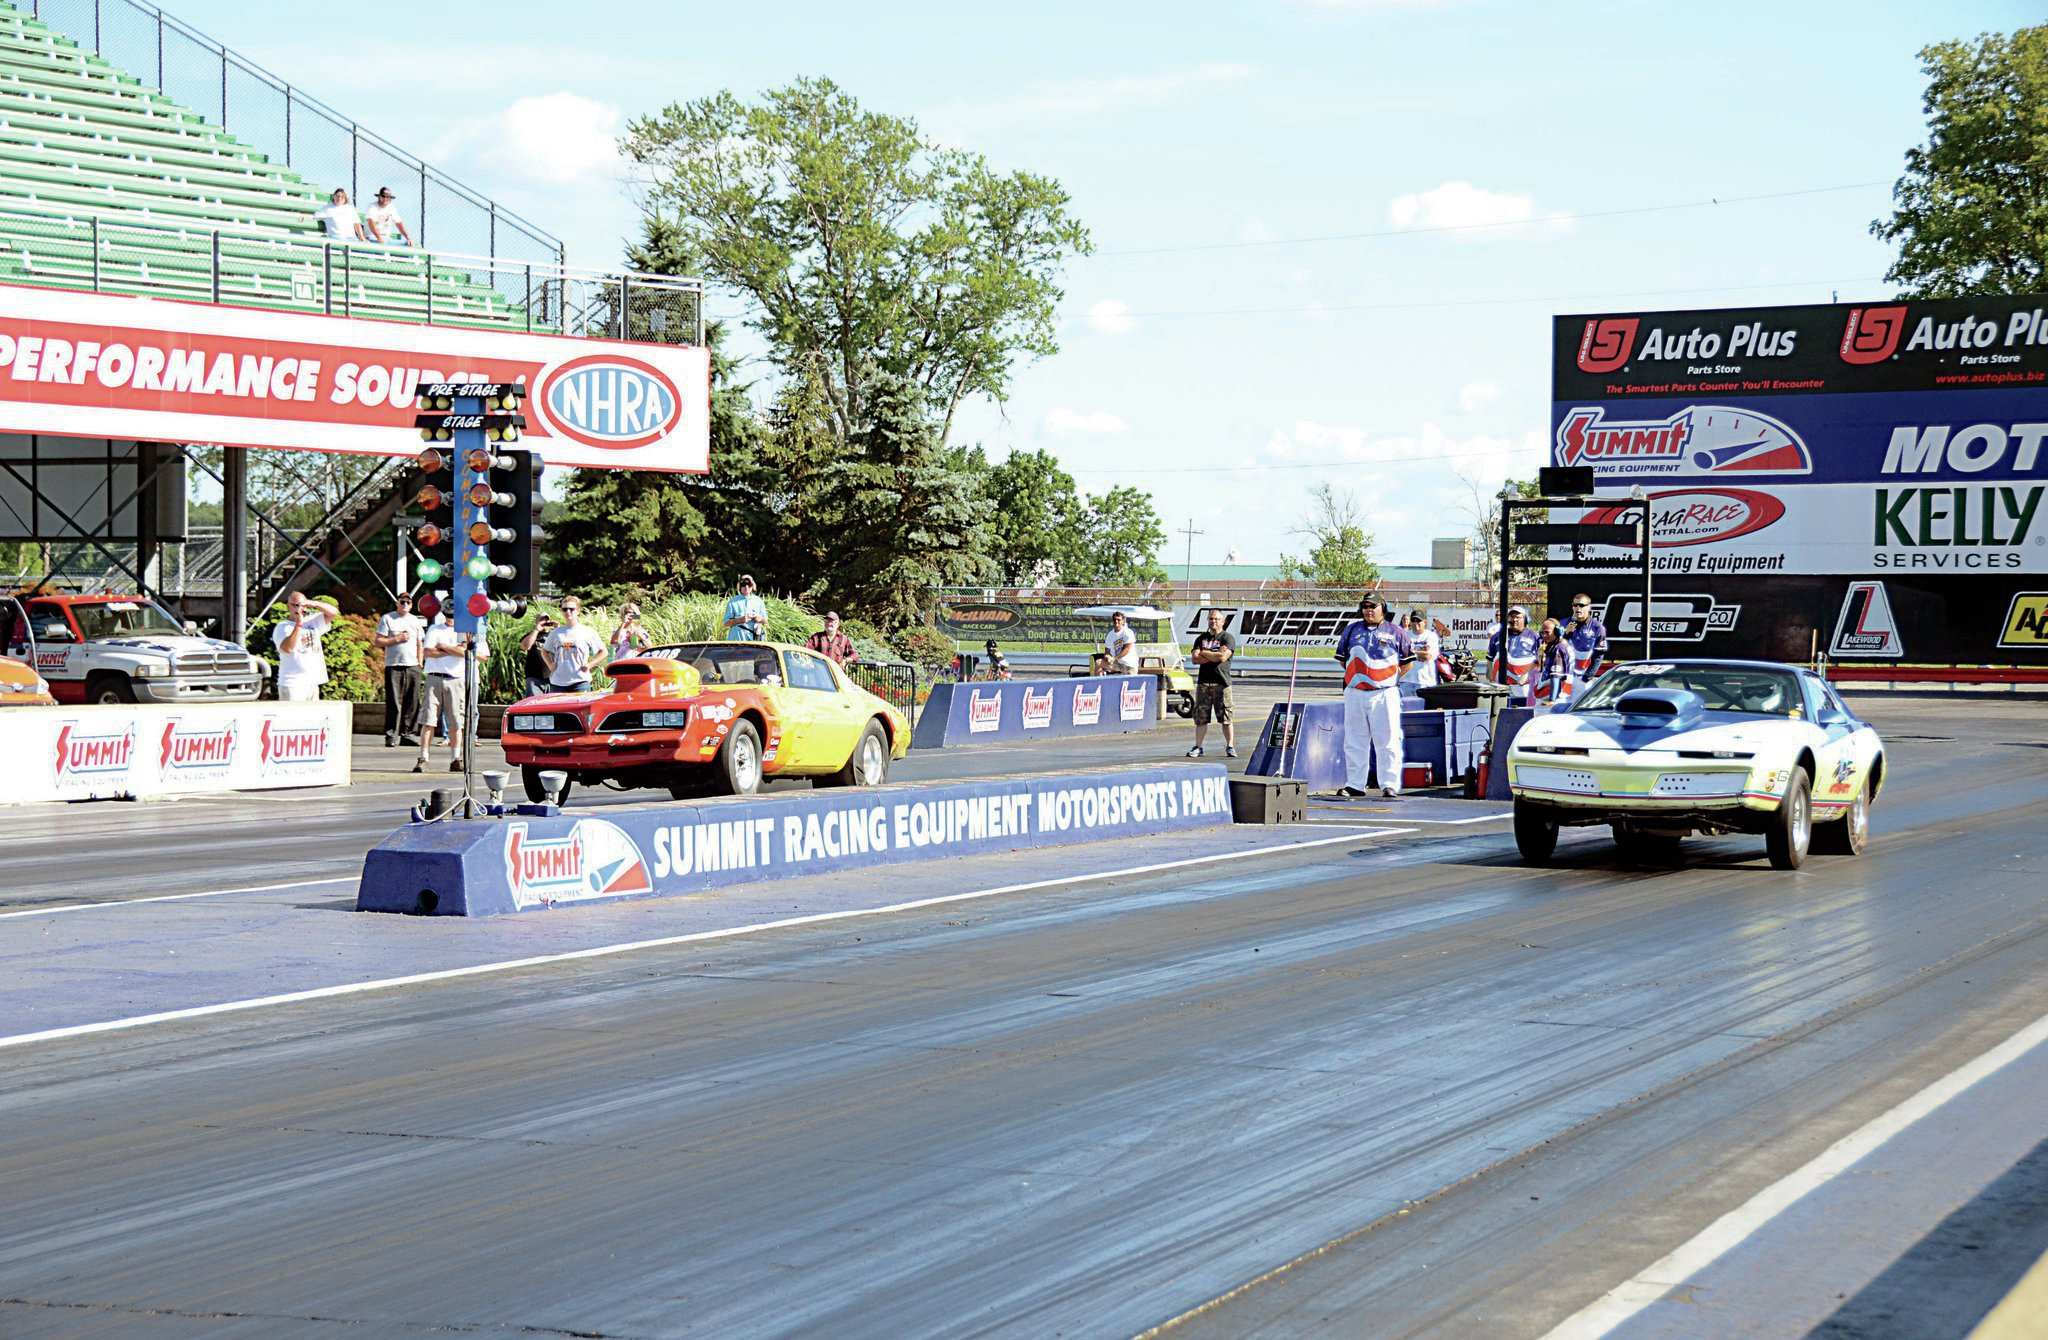 The final round of drag racing featured two Firebirds: the '77 of Ron Baisdin Jr. up against the '82 driven by Rick Cole Jr. Both drivers ran identical e.t.'s to their dial-in times, but Cole got the hole shot for the win by 0.001 second.